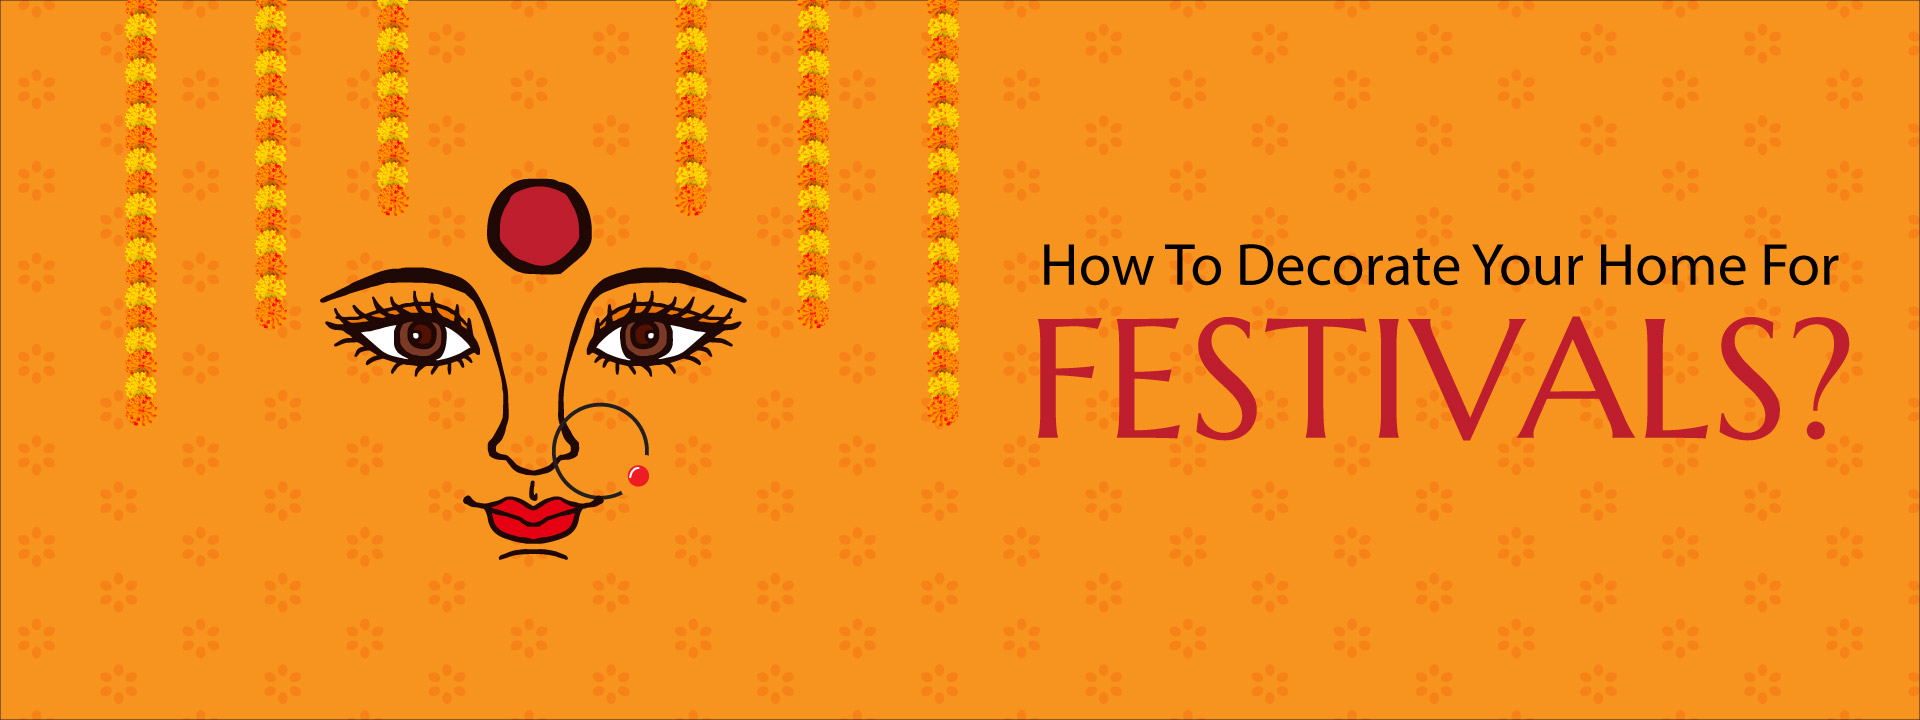 How To Decorate Your Home For Festivals?